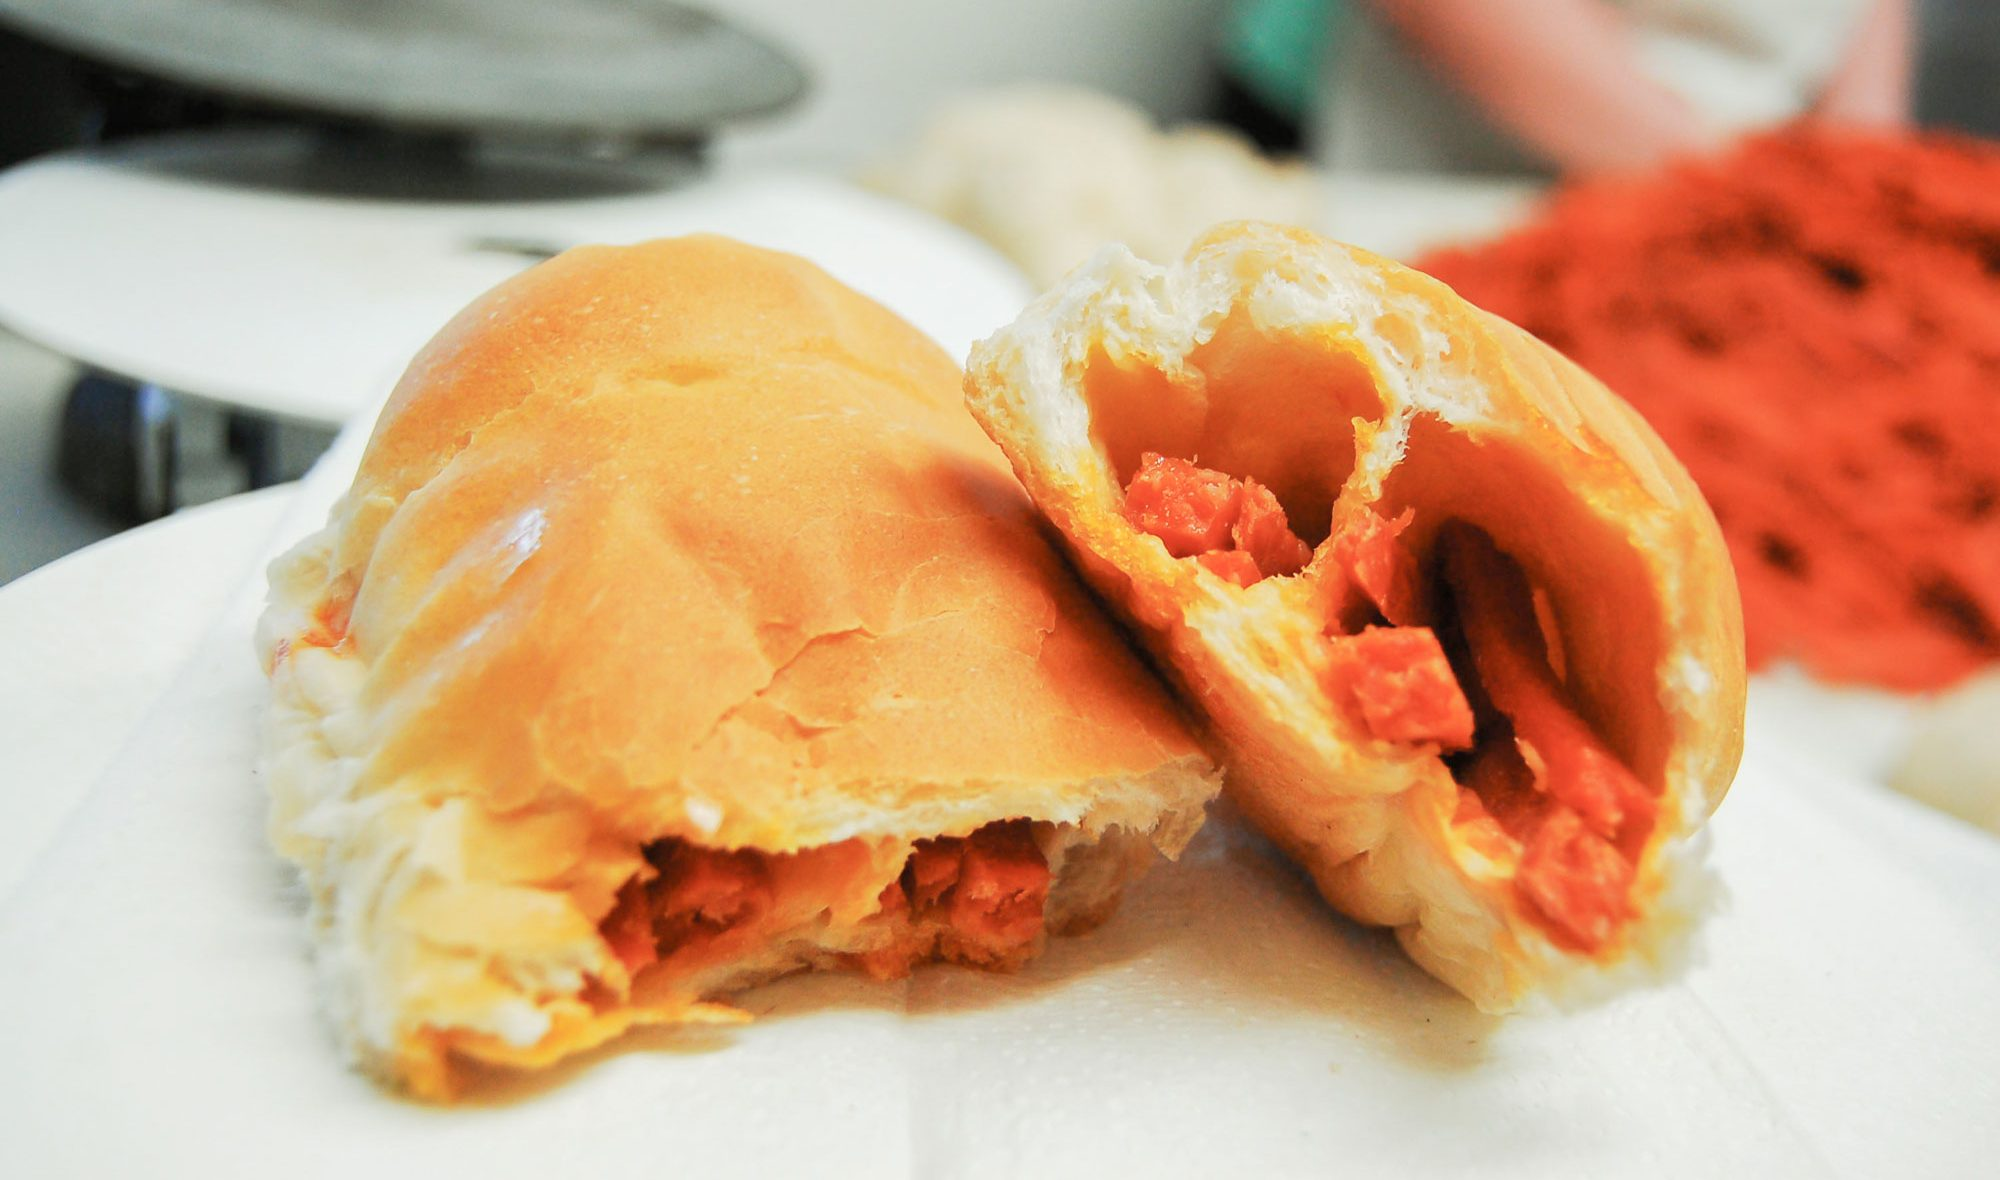 A pepperoni roll ripped in two.